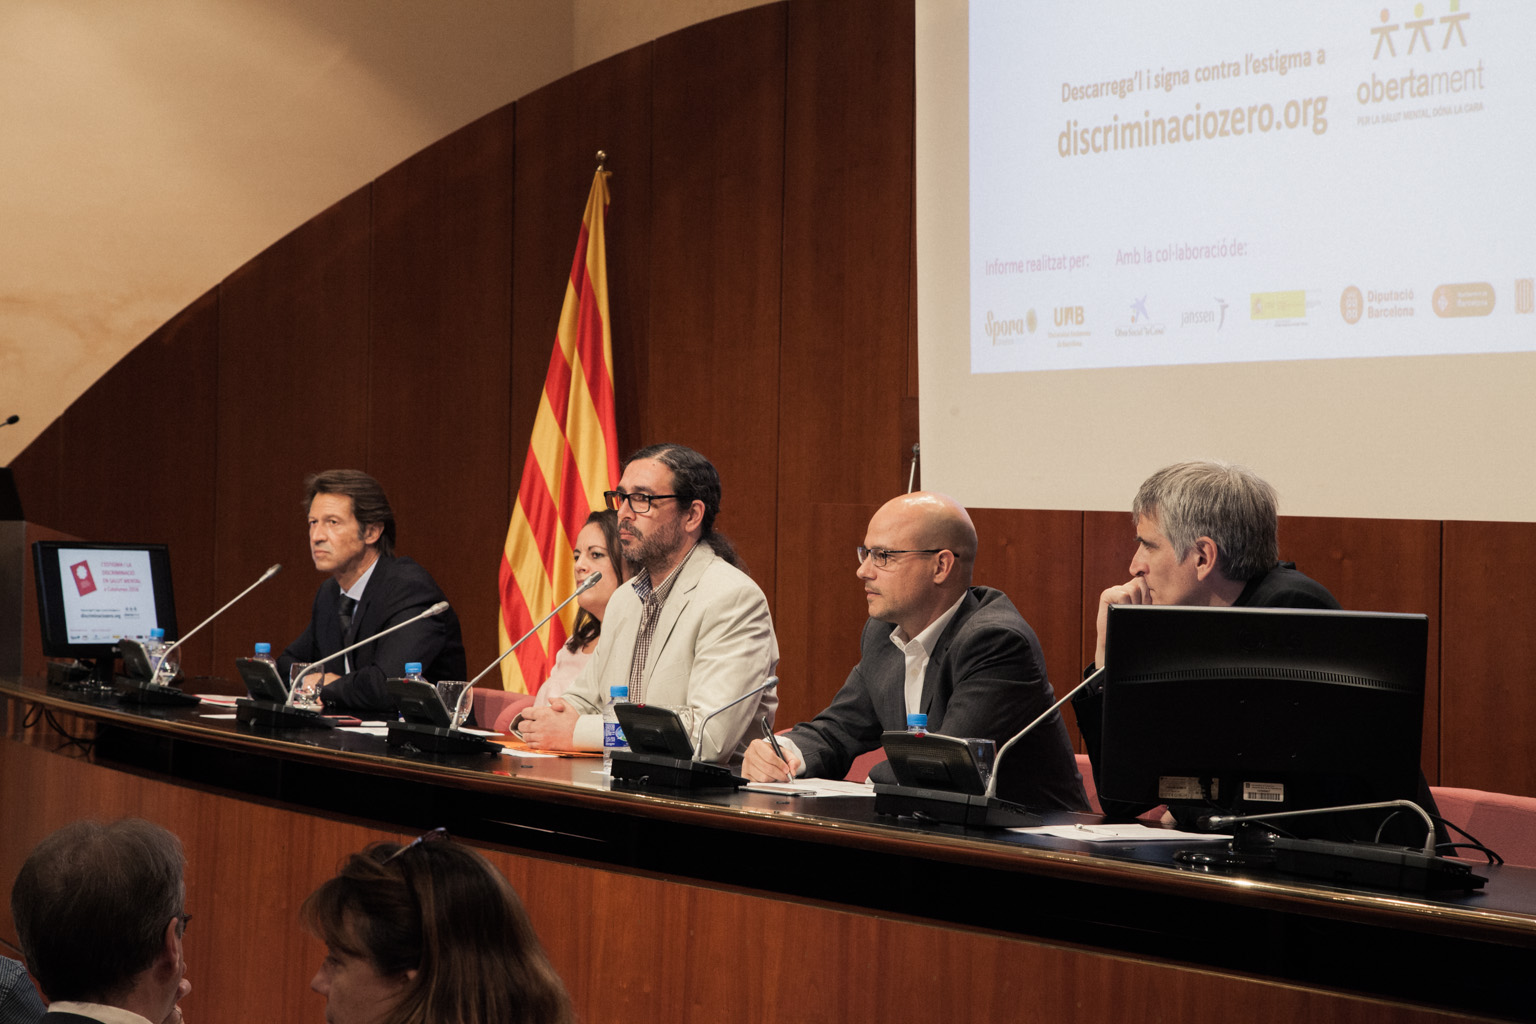 80% of Catalans with mental disorders have been discriminated in some area of their life due to their mental health state